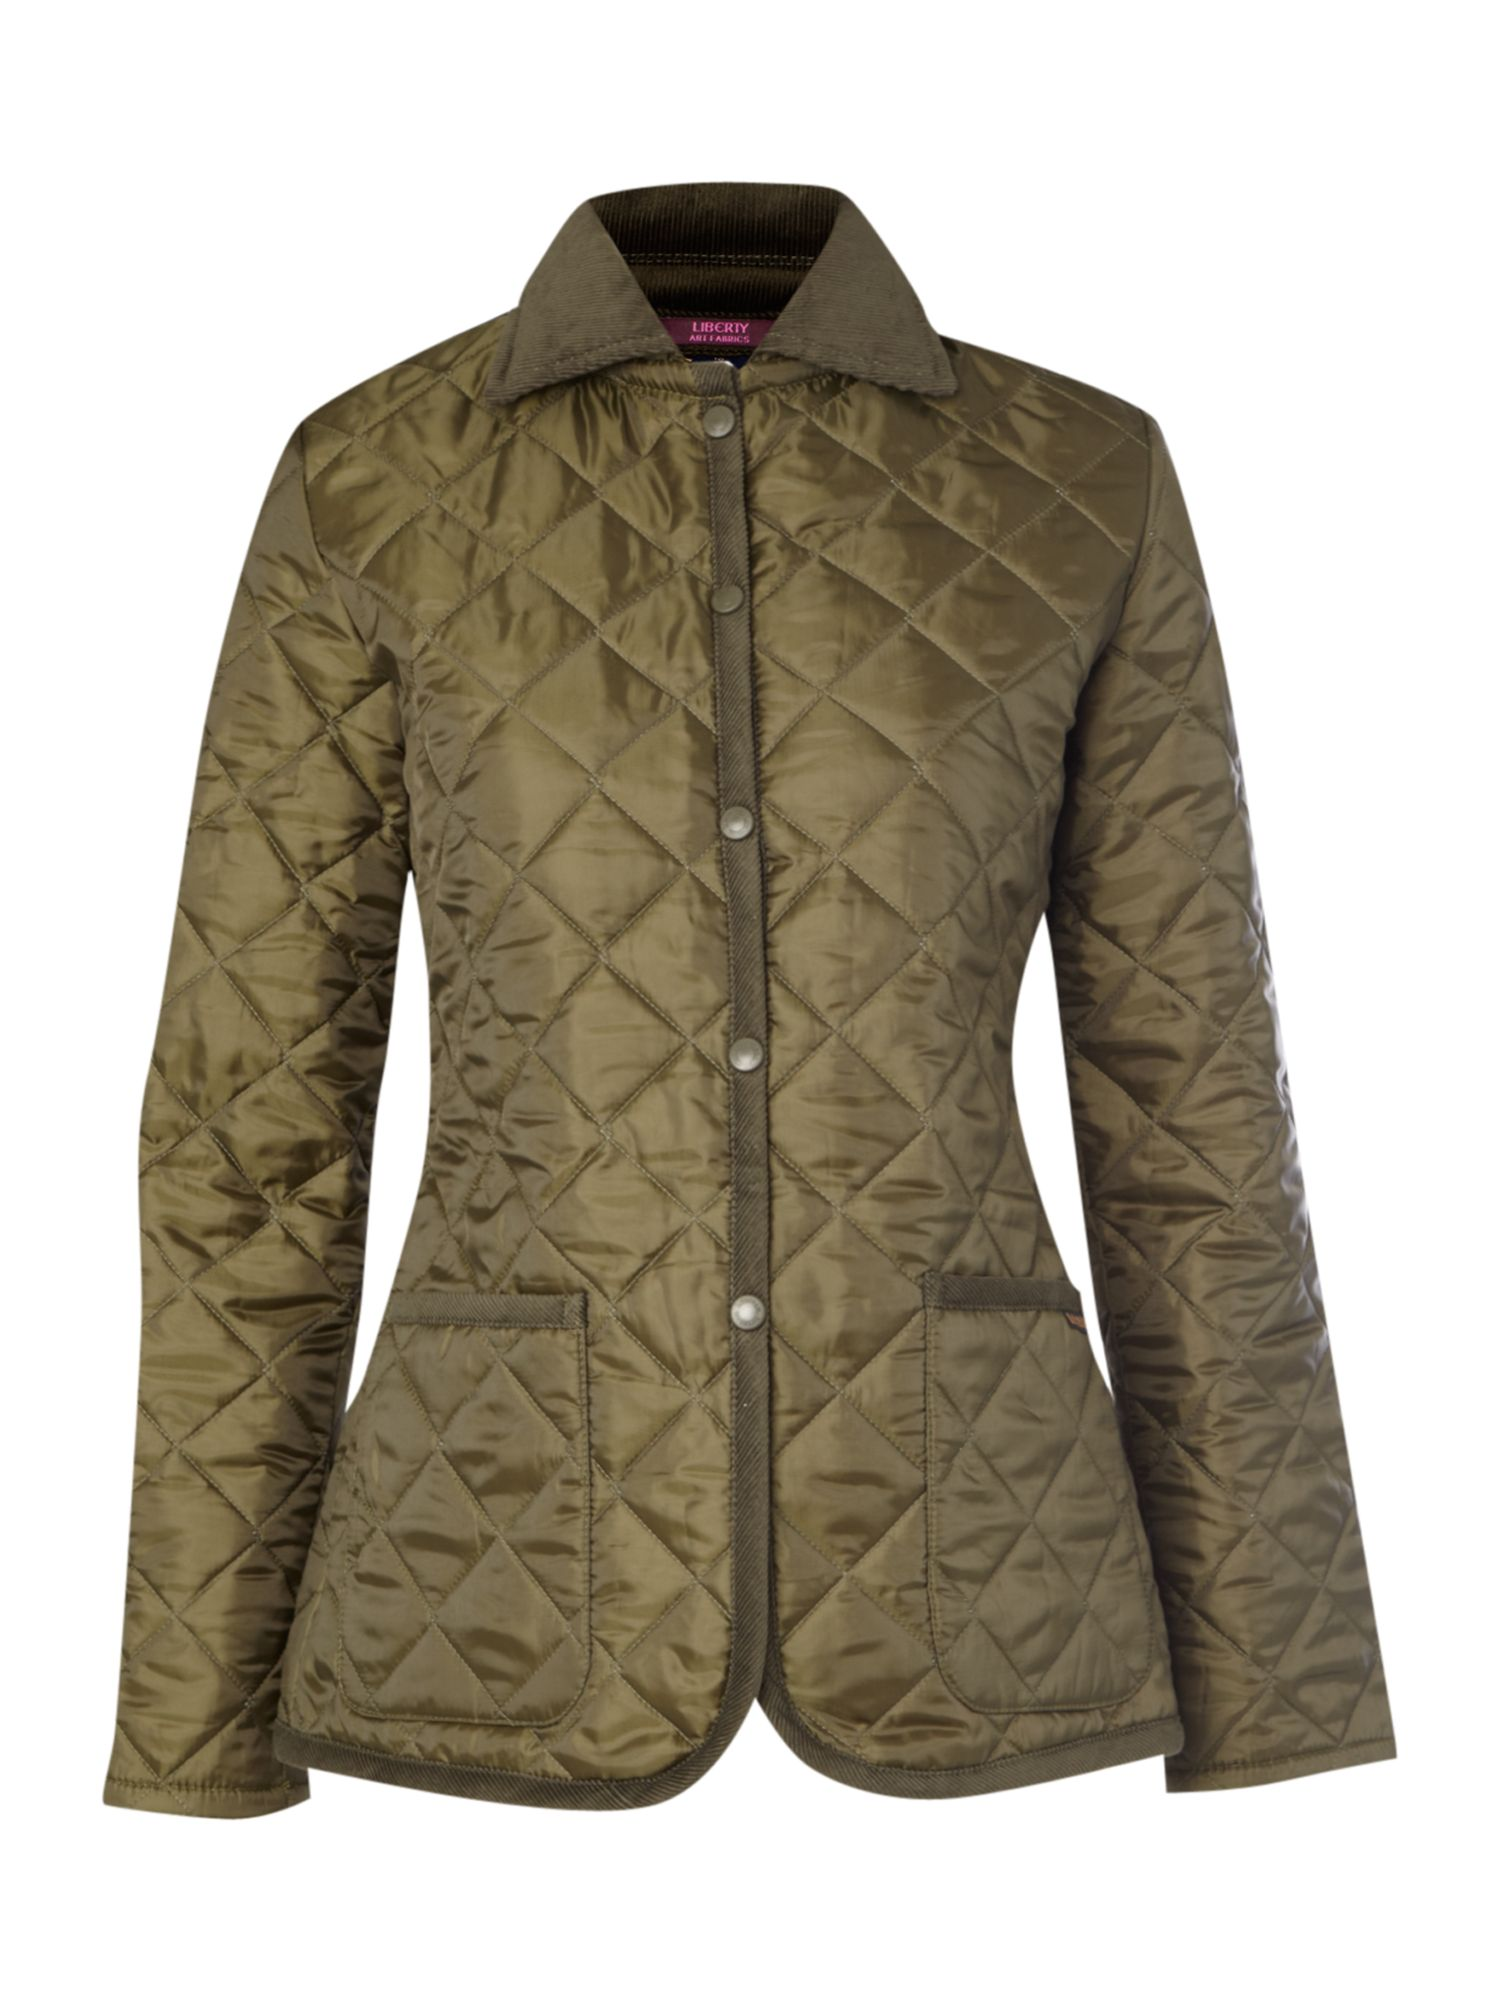 Padded jacket with liberty print